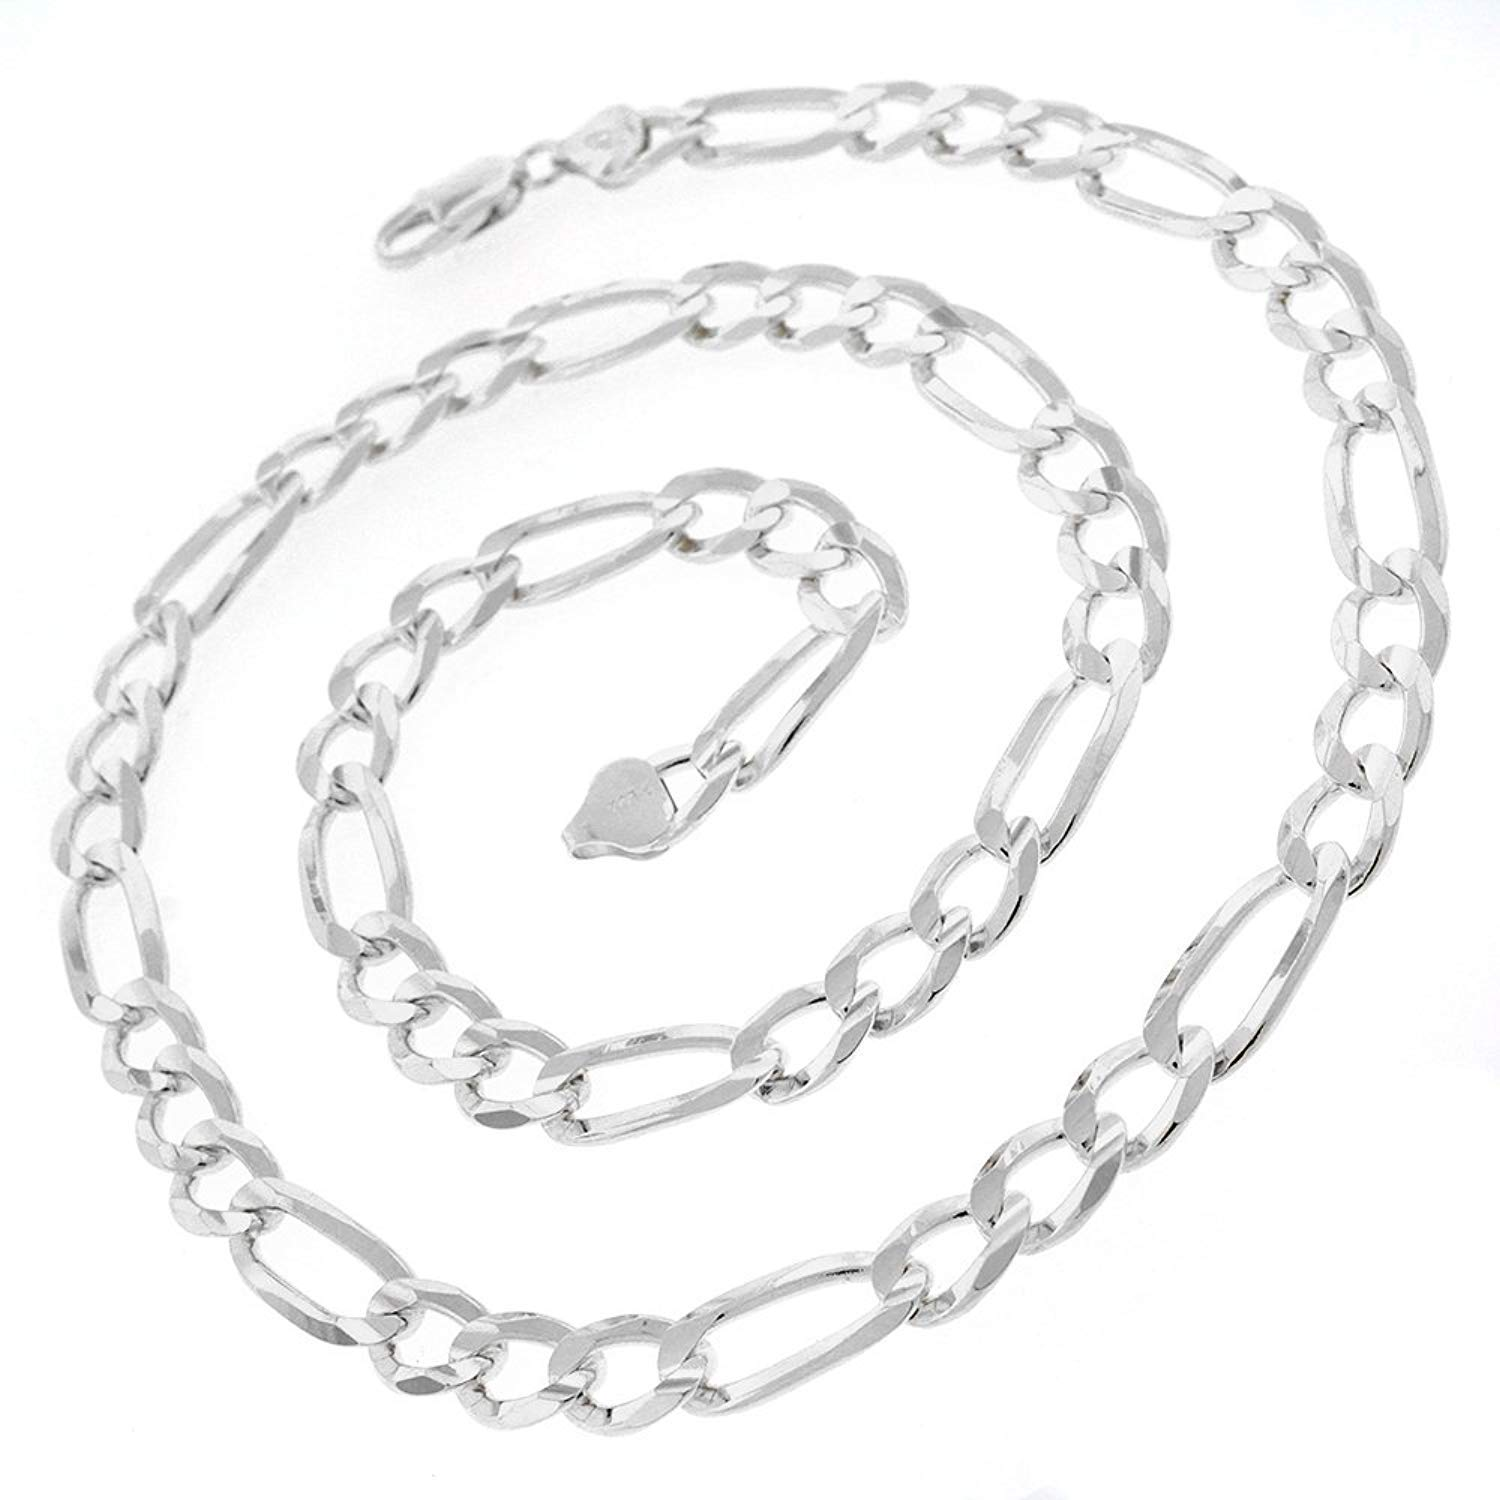 Patented ITProLux 8.5mm Figaro Link 20-30 Elite Anti-Tarnish 20 Made In Italy Solid Necklace Chain 925 Sterling Silver